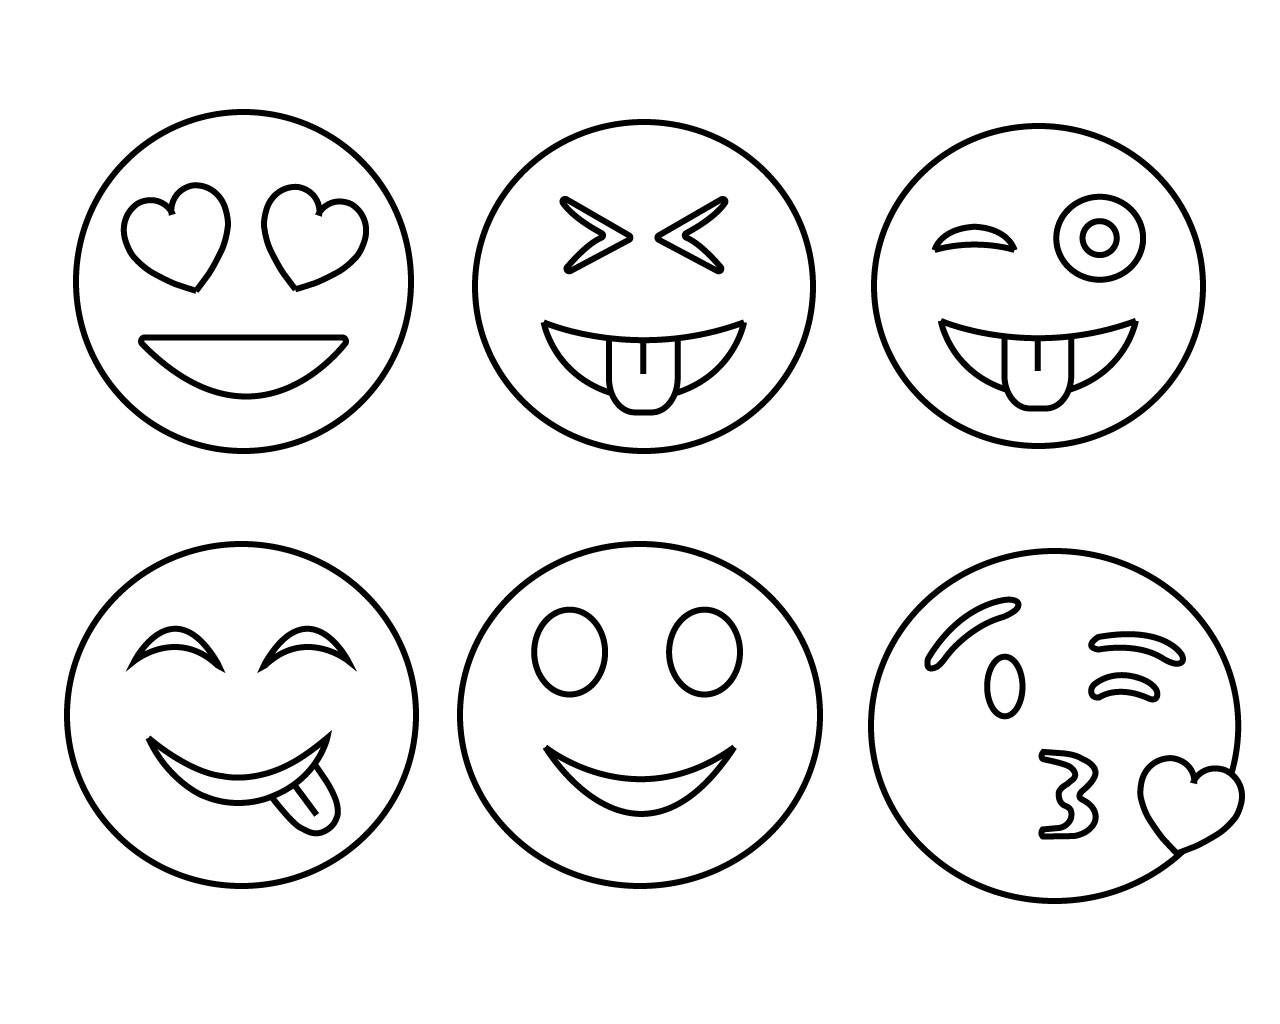 Common Emojis Coloring Page